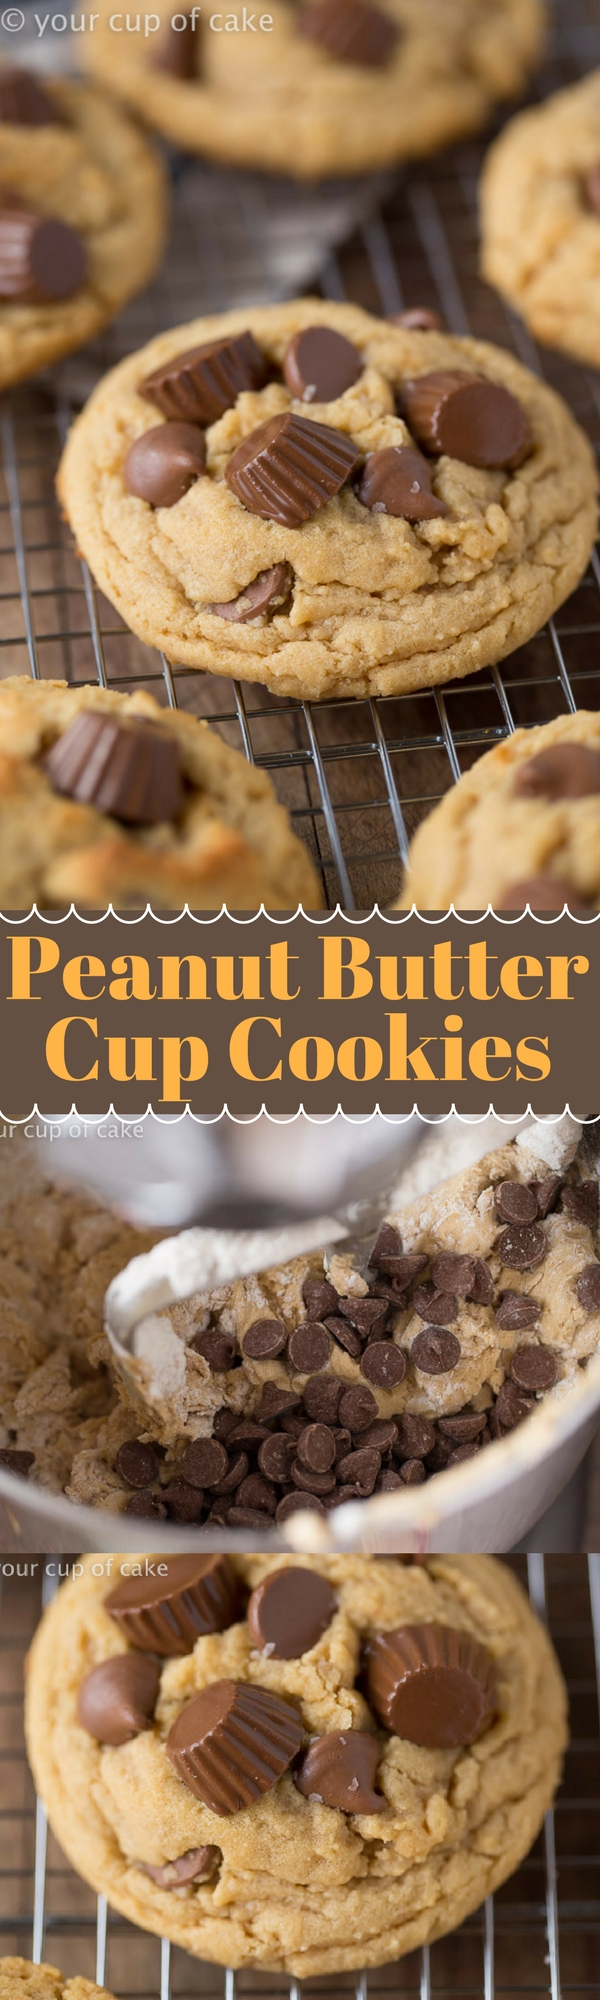 Reese's Peanut Butter Cup Cookies for peanut butter lovers!